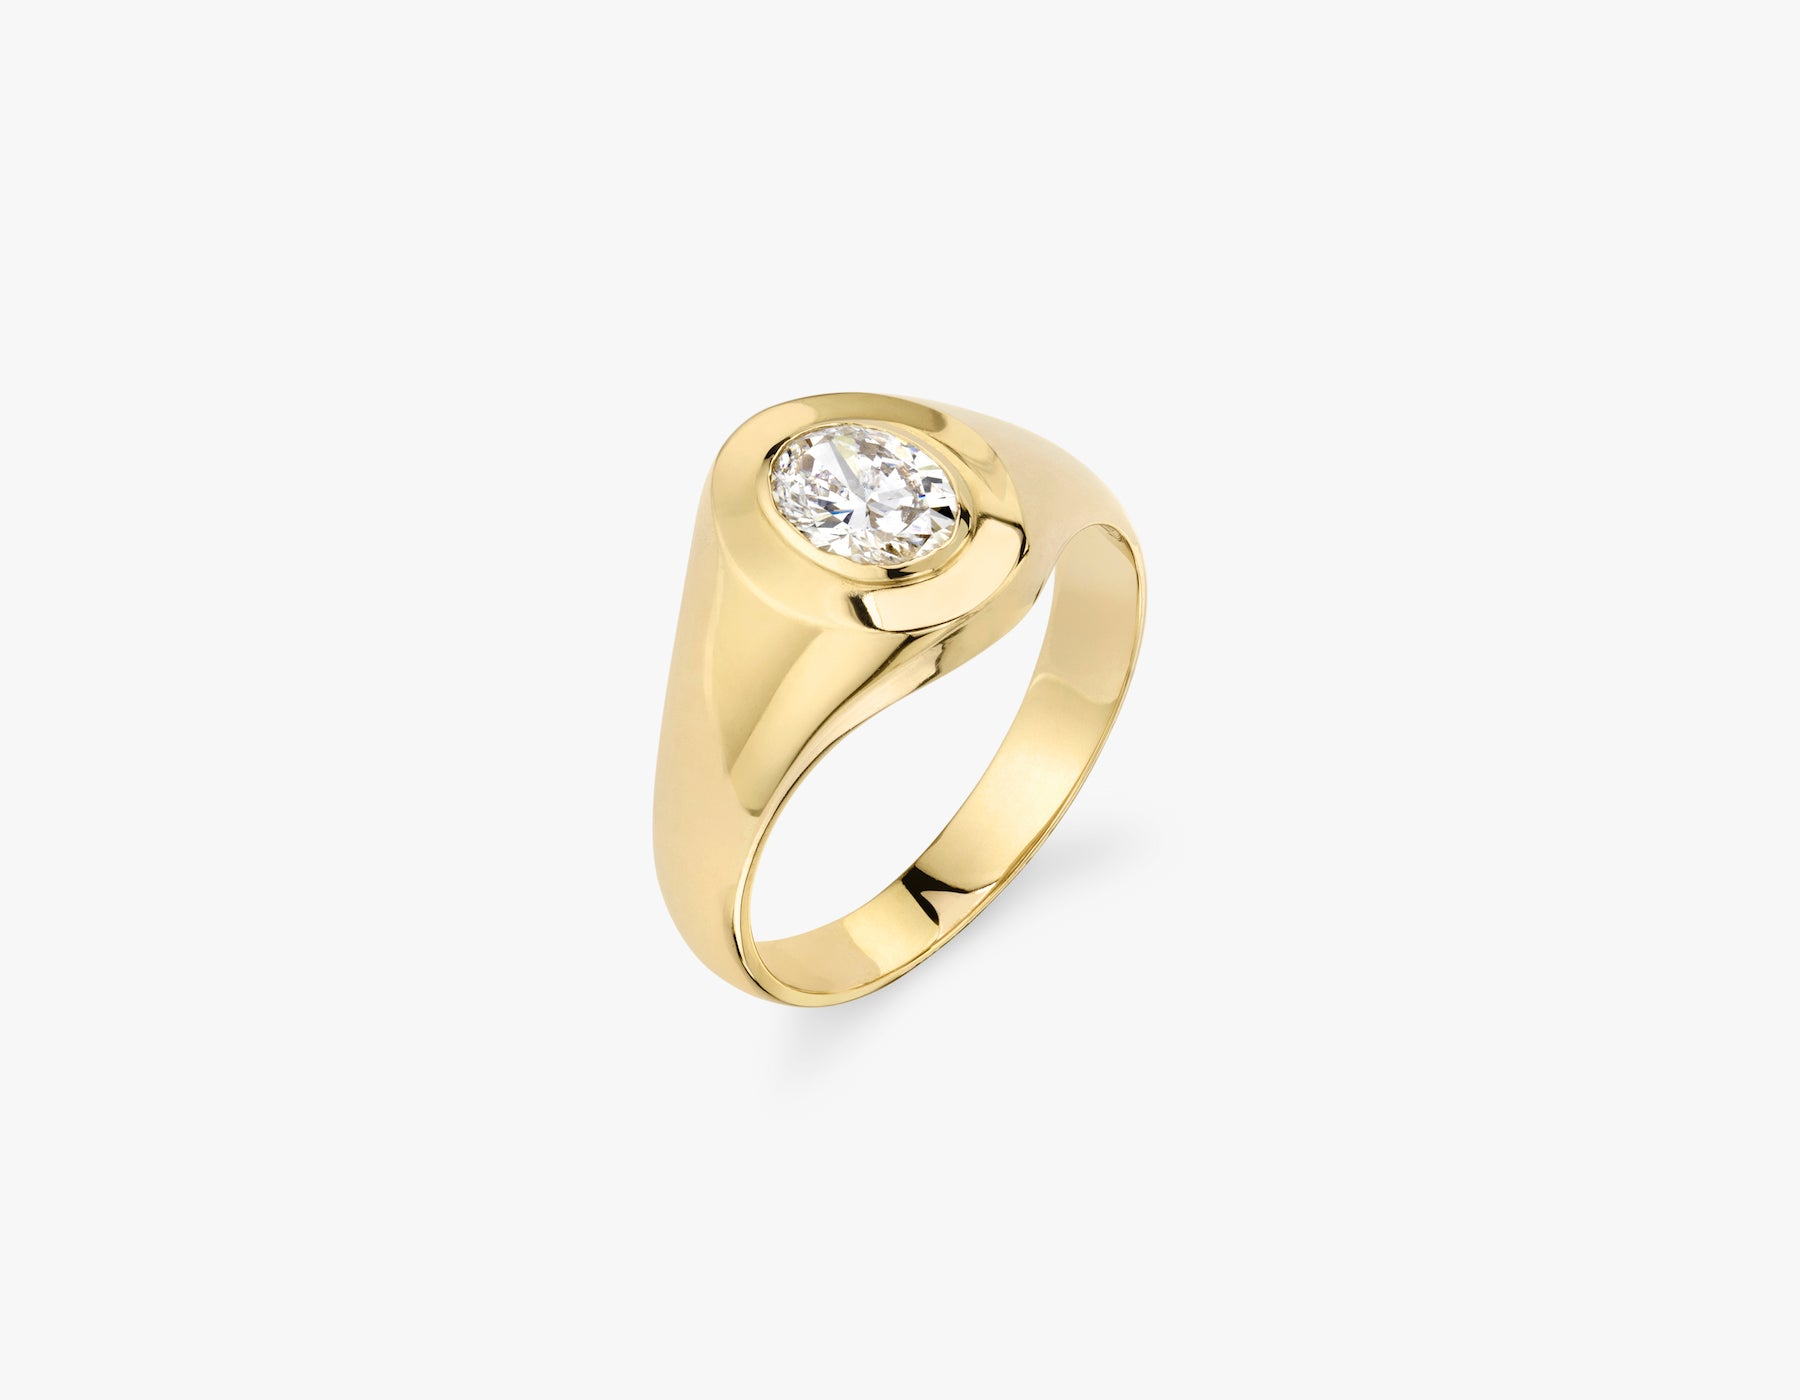 Vrai 14k solid gold classic minimalist Oval Diamond Signet Ring, 14K Yellow Gold